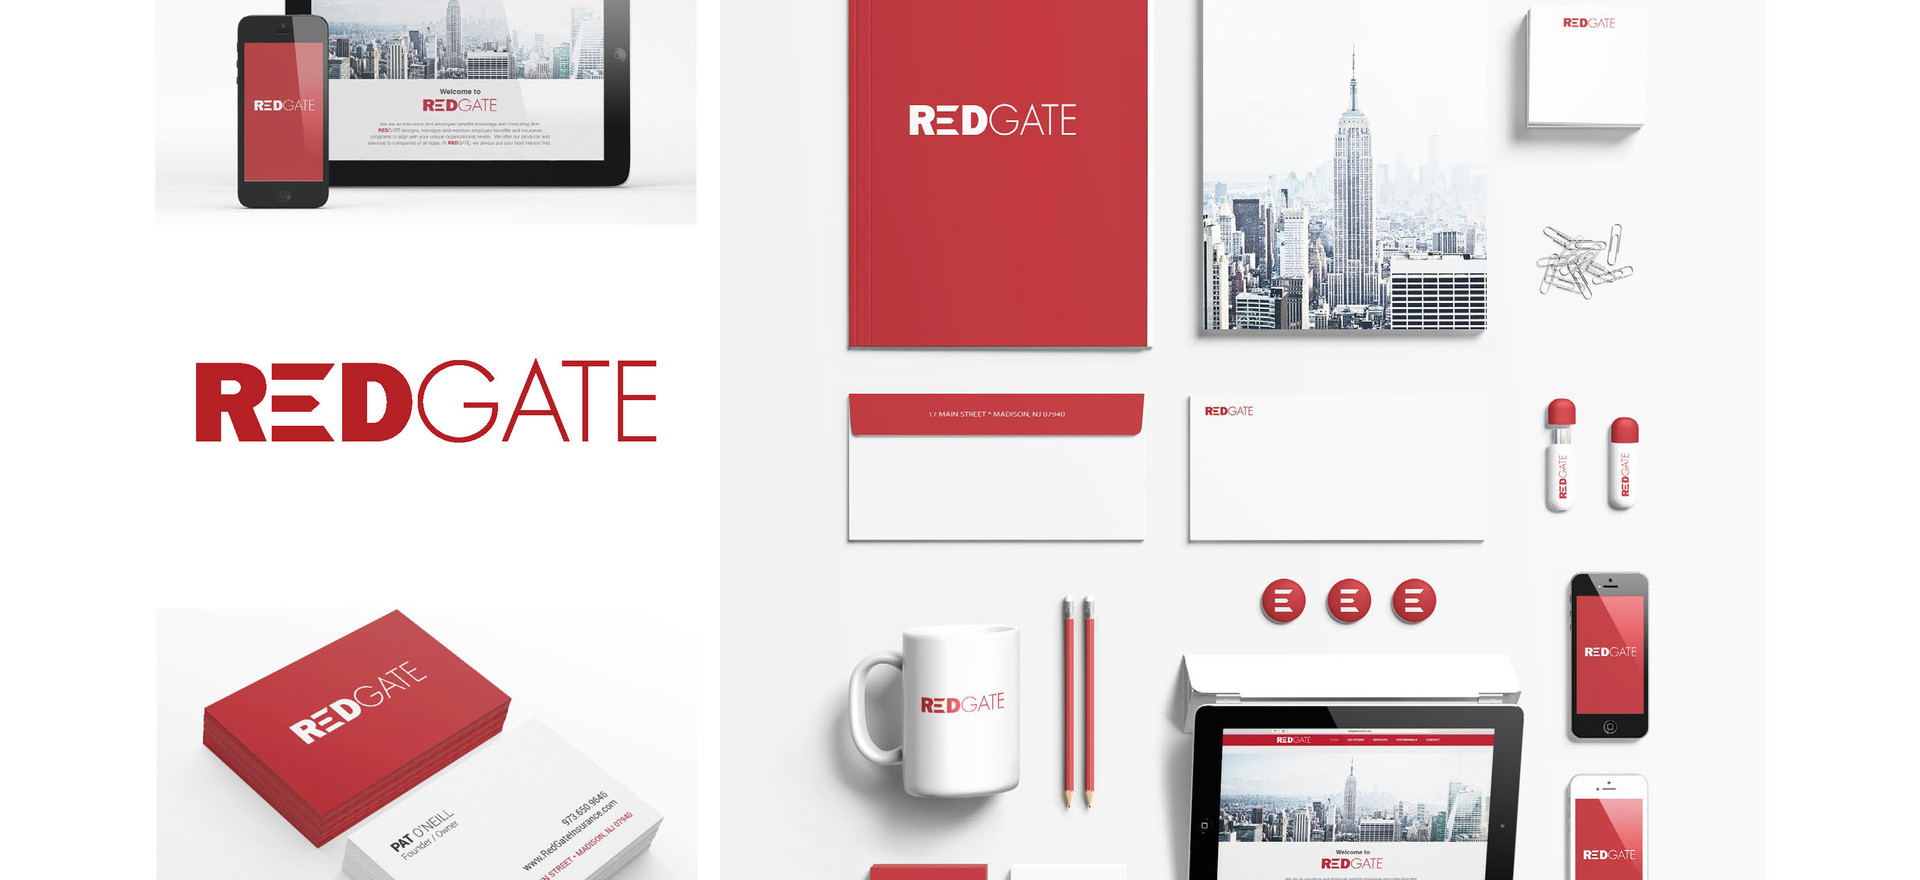 RedGate ReBranding Project